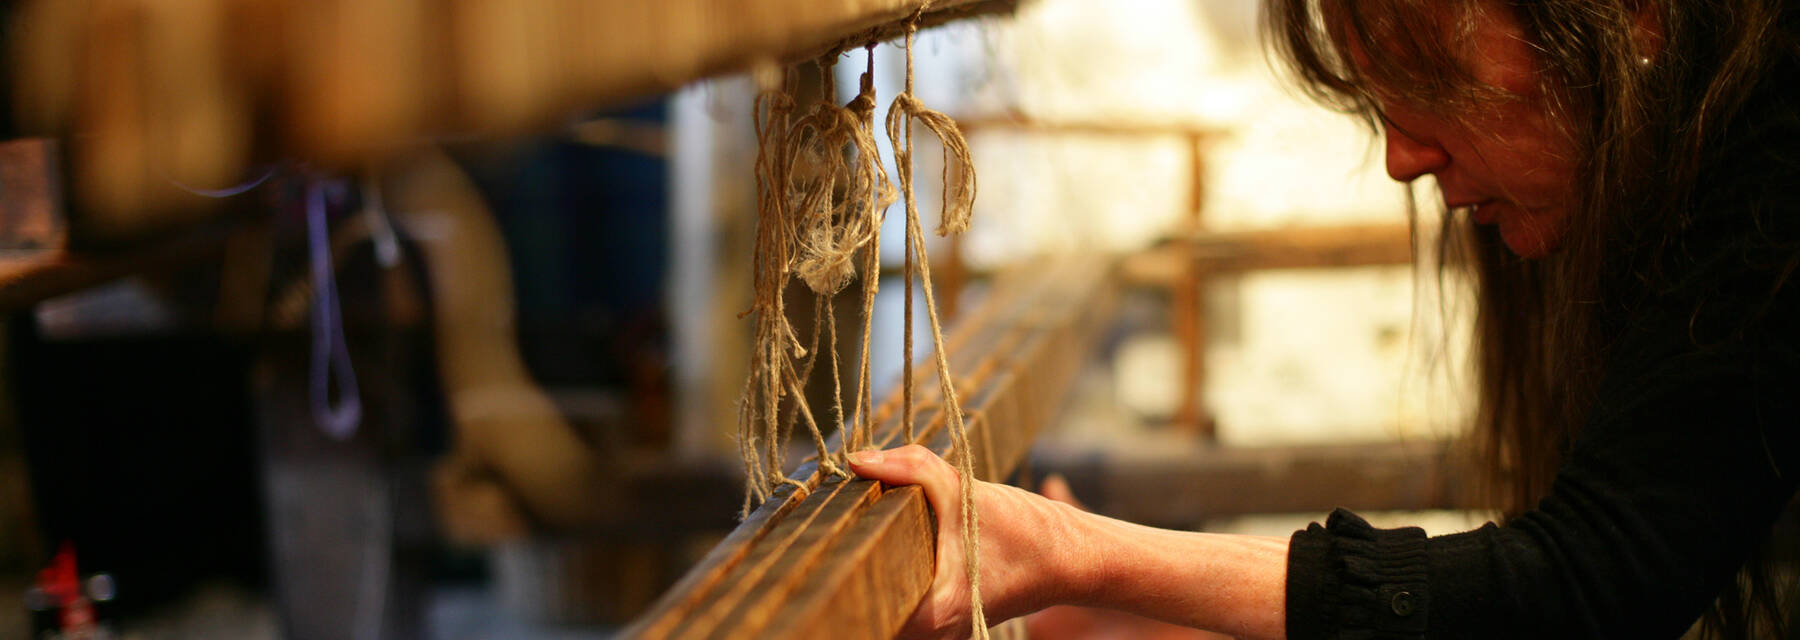 Weaving on the loom